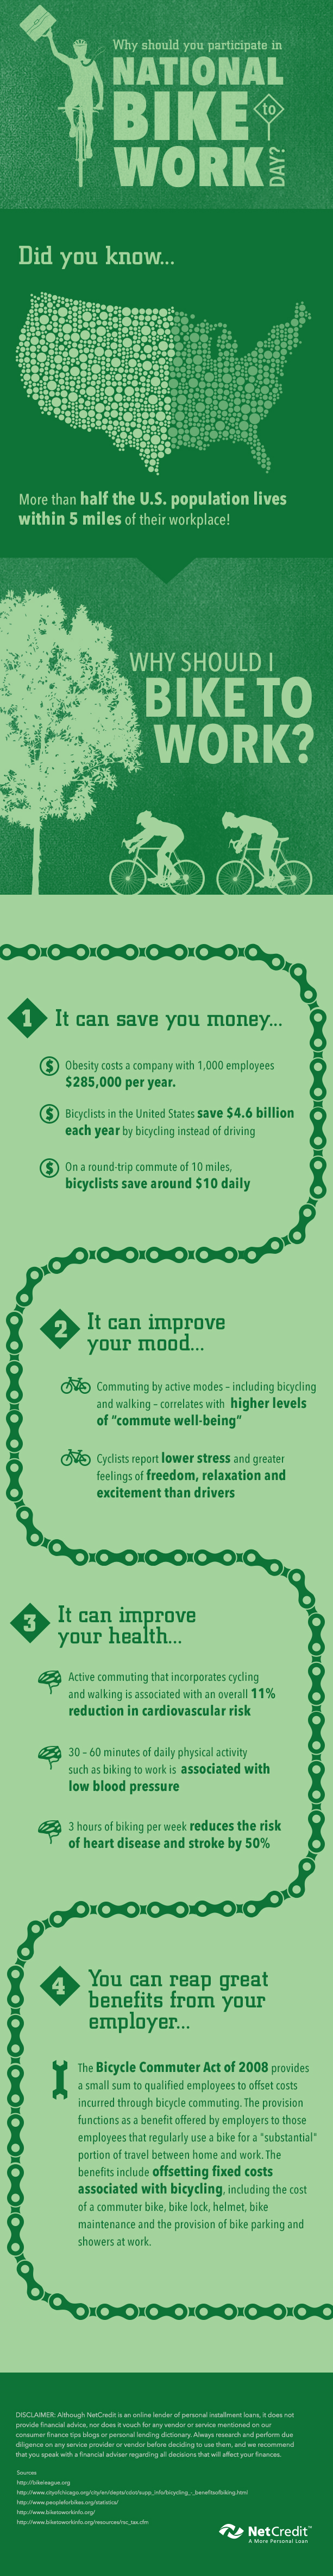 Bike to Work Day Infpgraphic